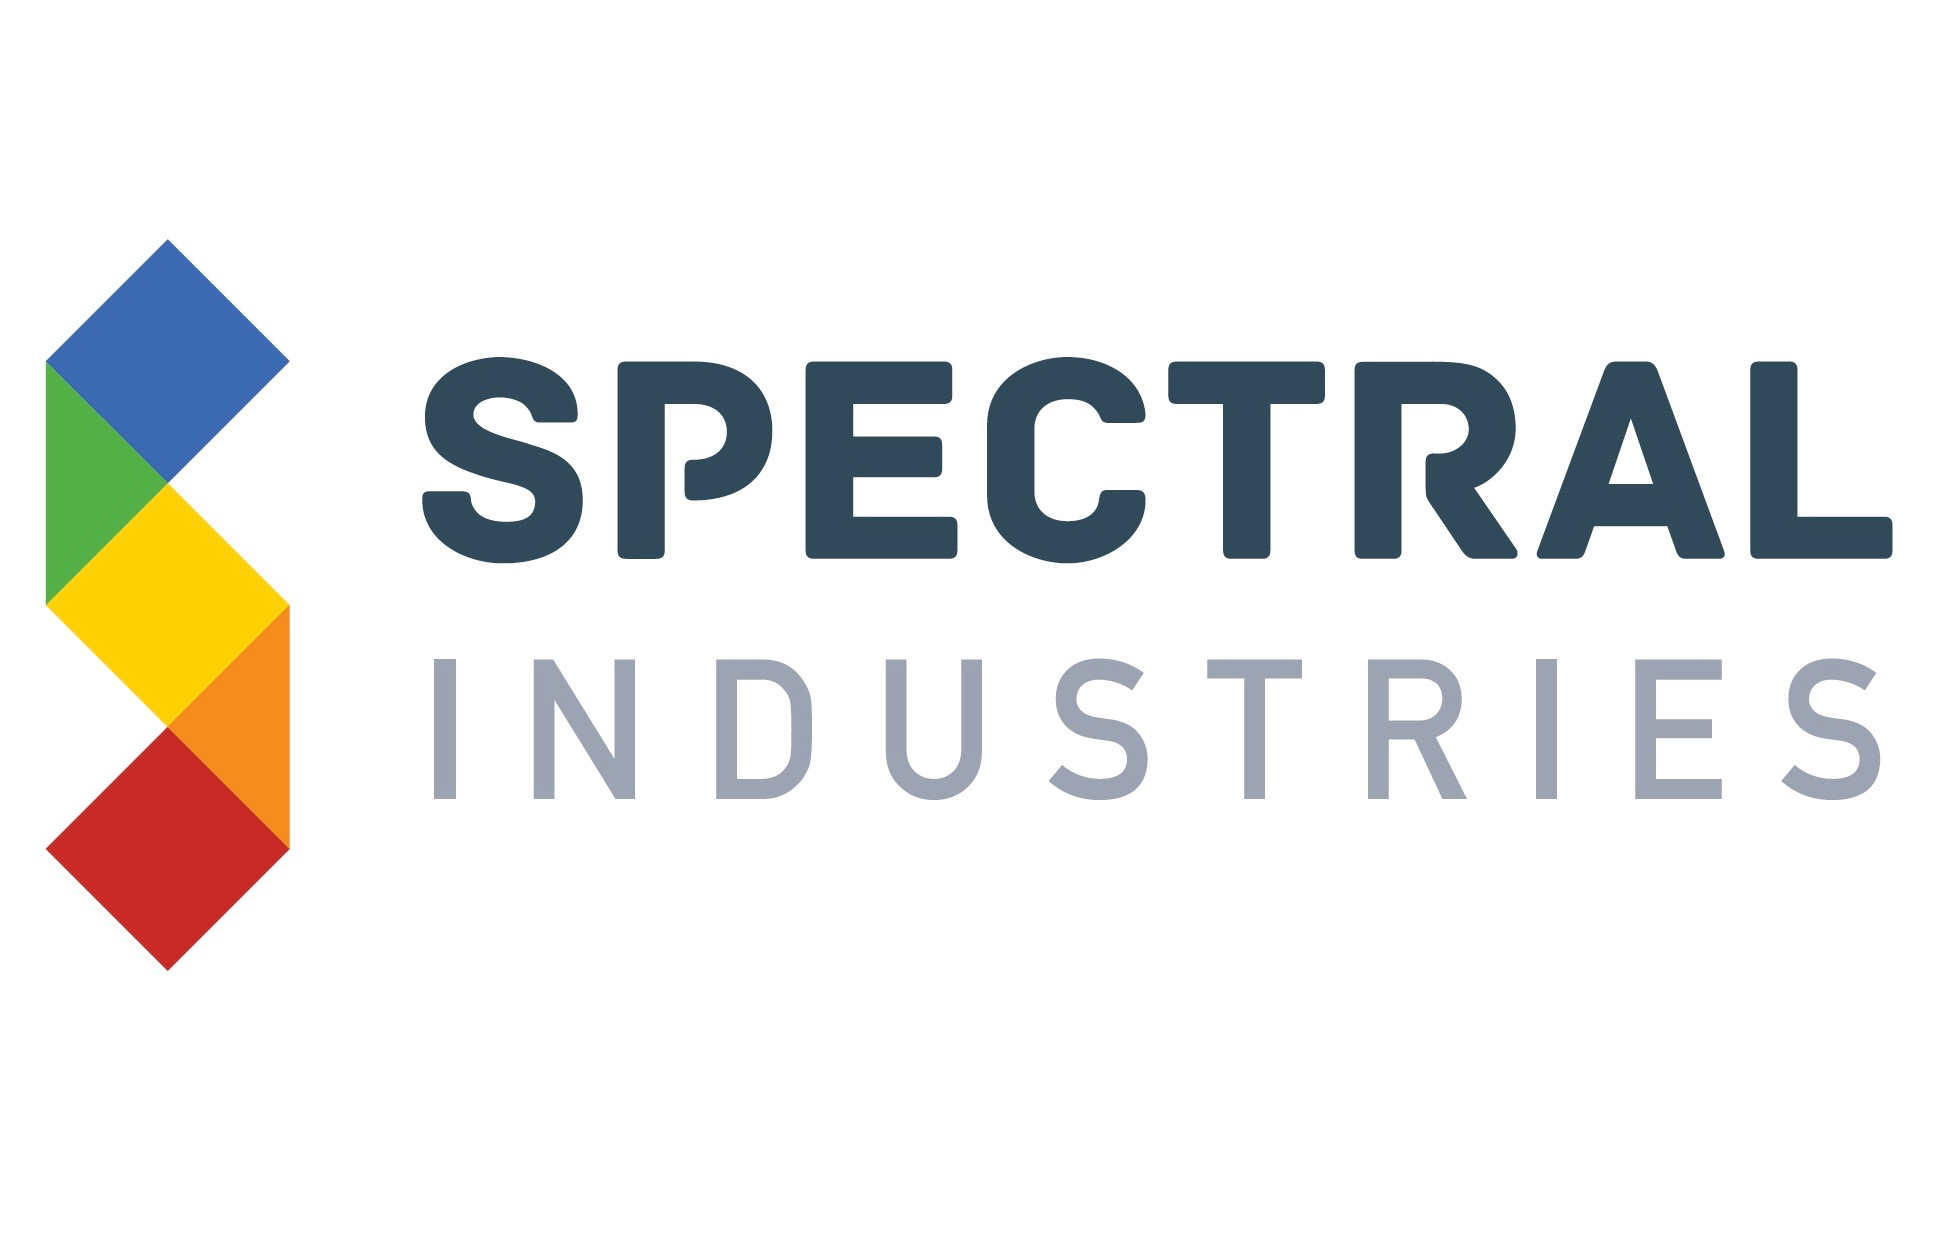 spectral industries develop beyond state of the art spectroscopy